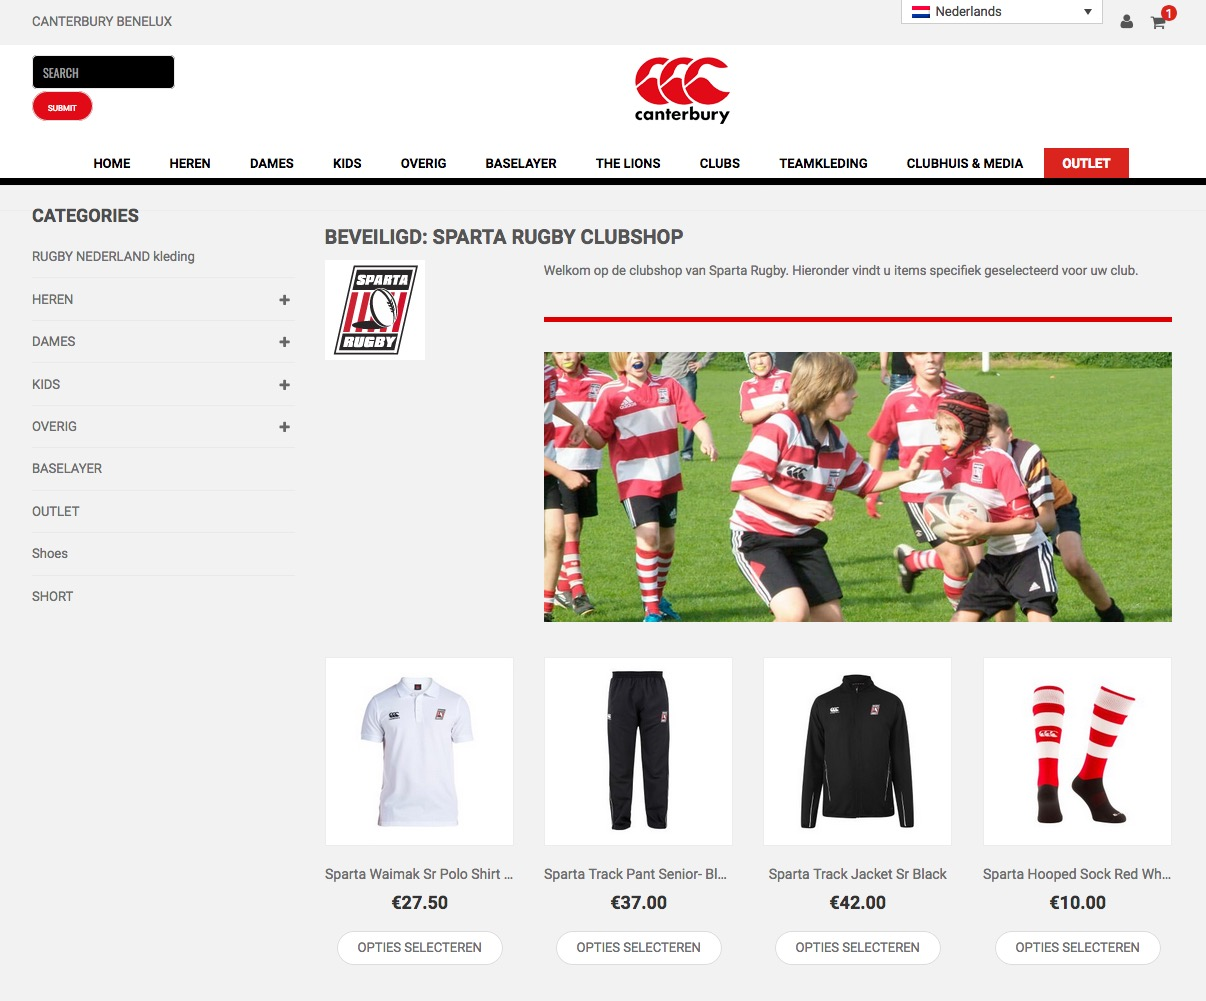 image of the sparta-rugby webshop